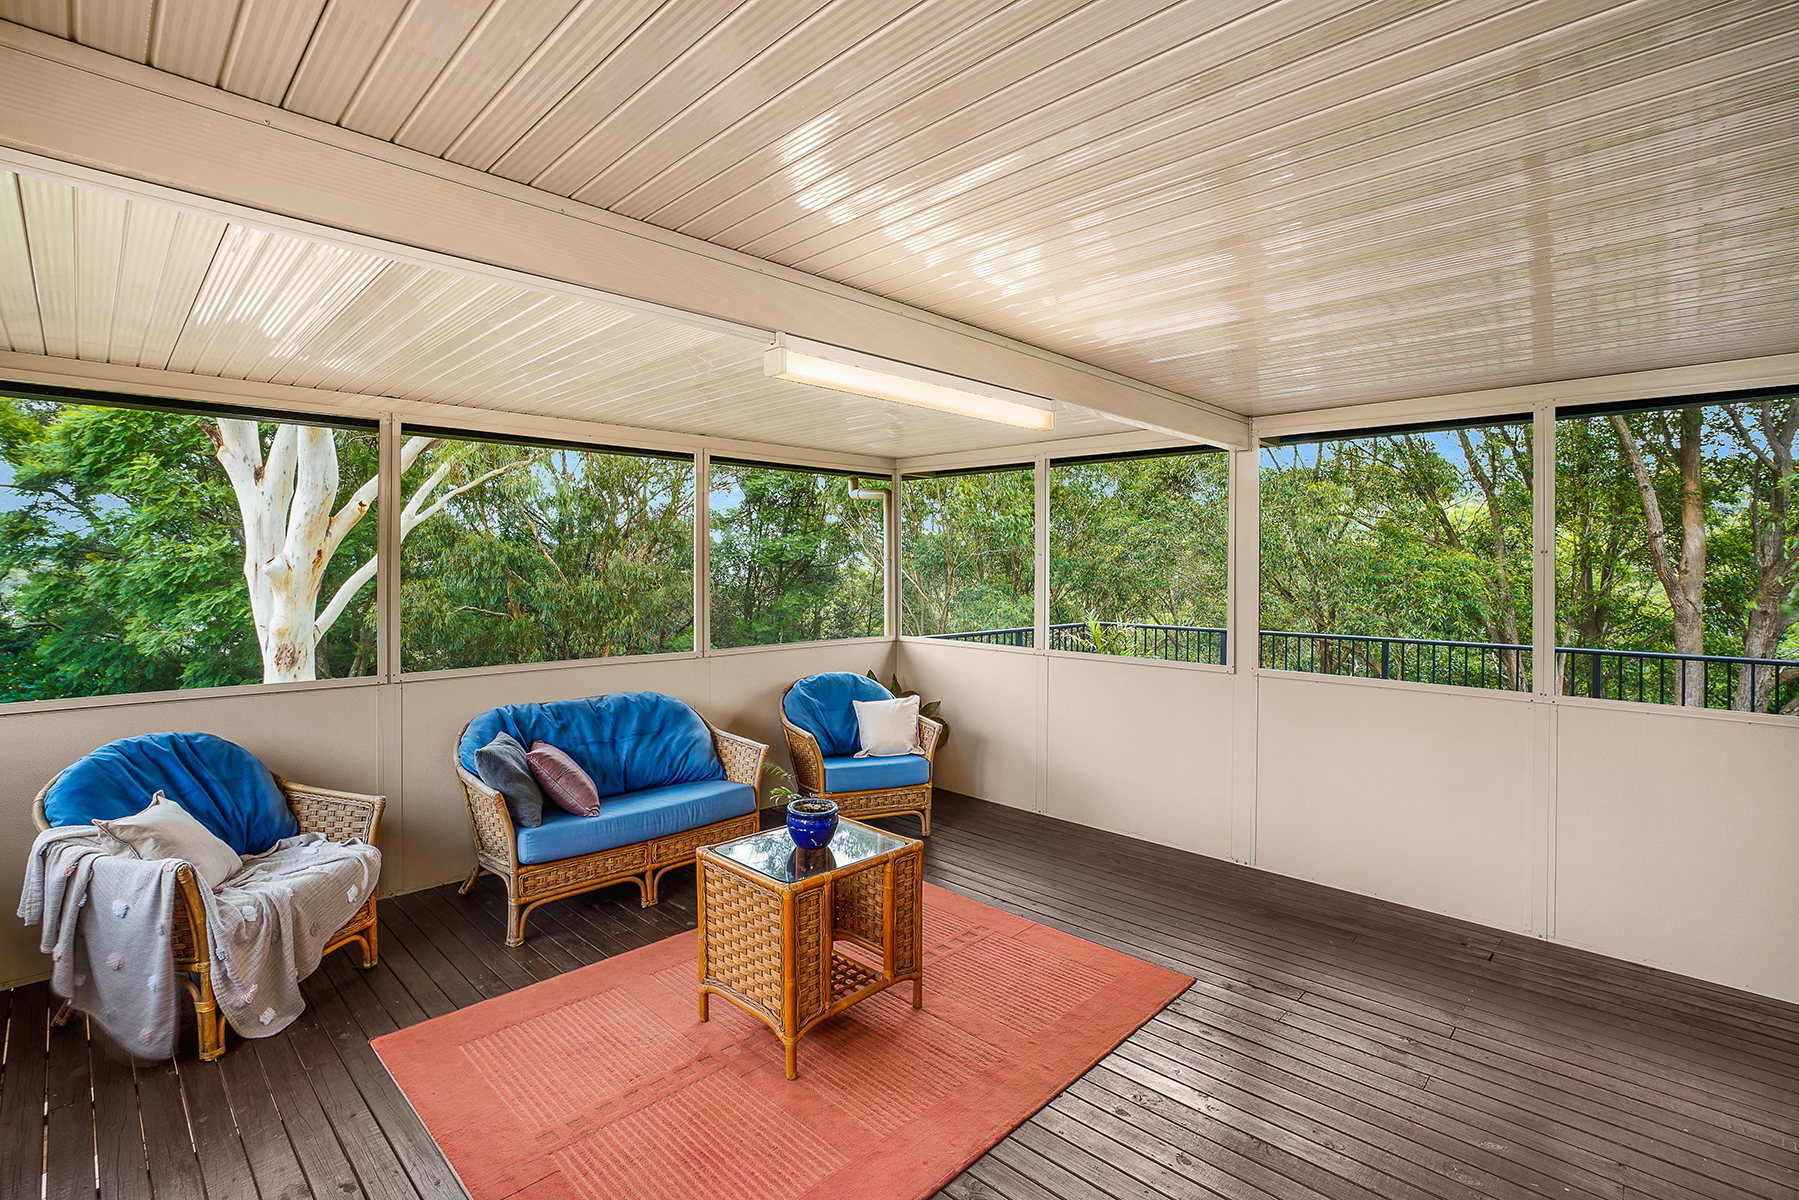 Enclosed Deck / Outdoor Living